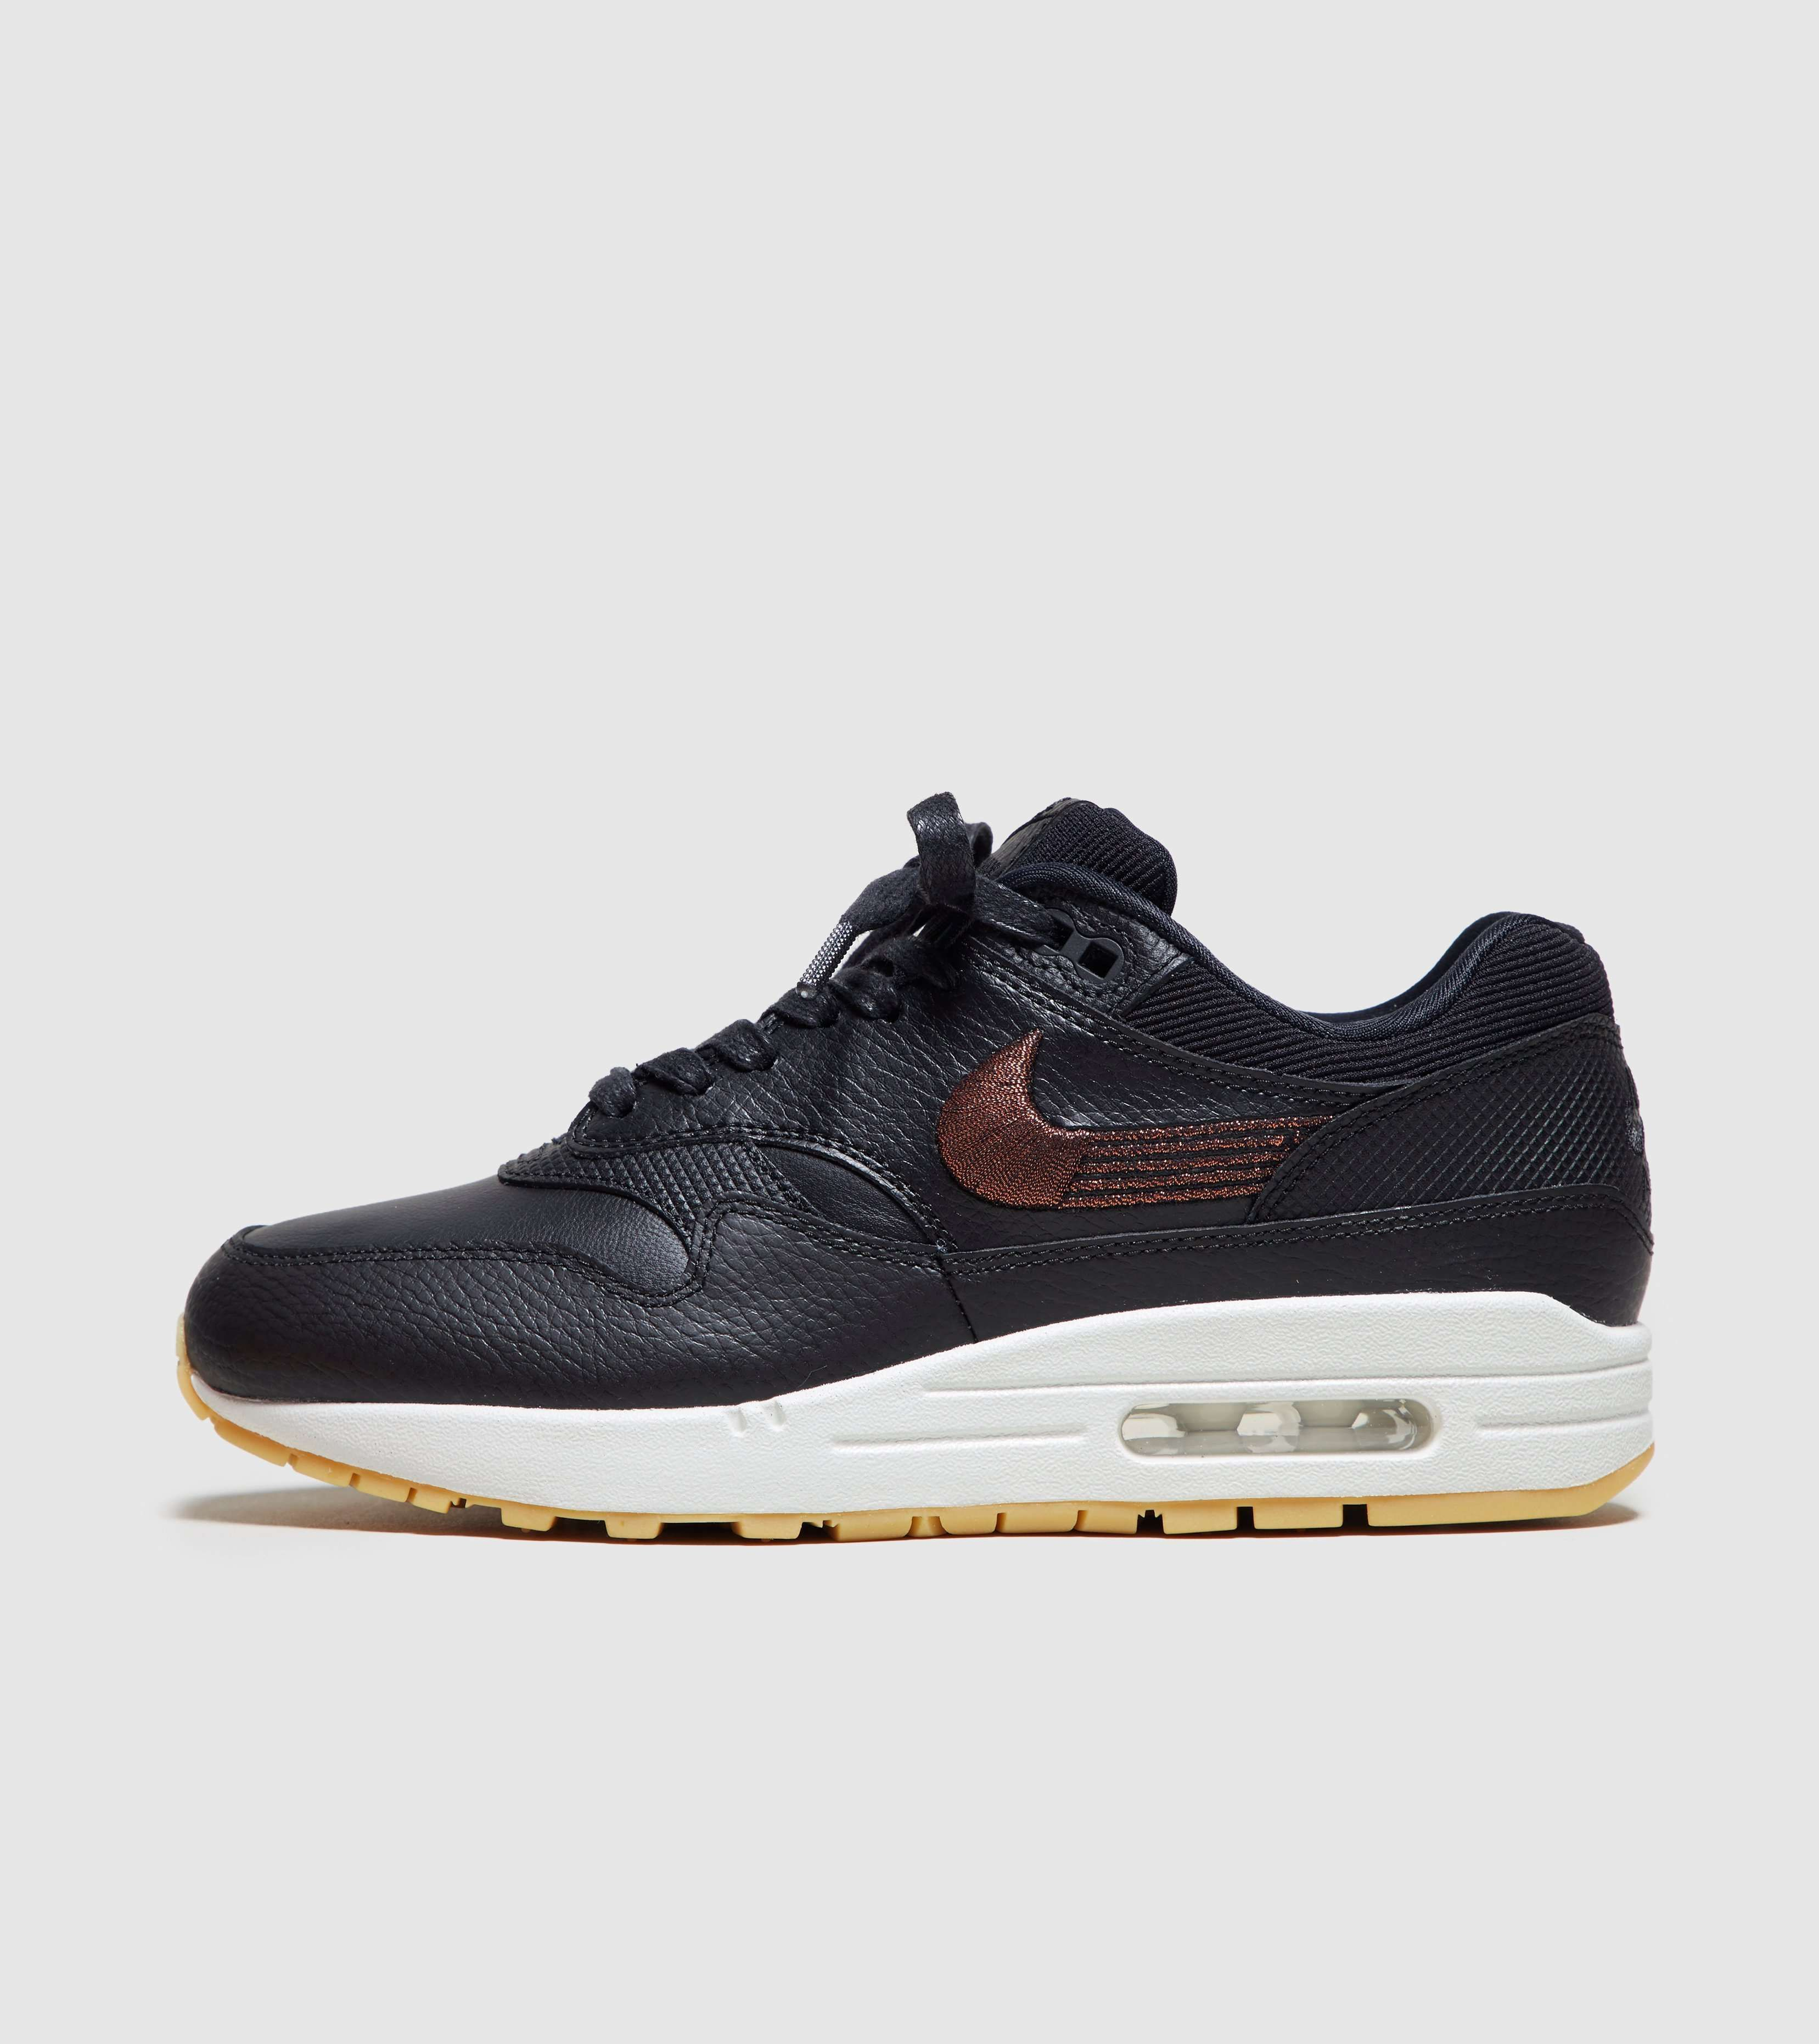 Nike Air Max 1 Premium Dames find out more on our site